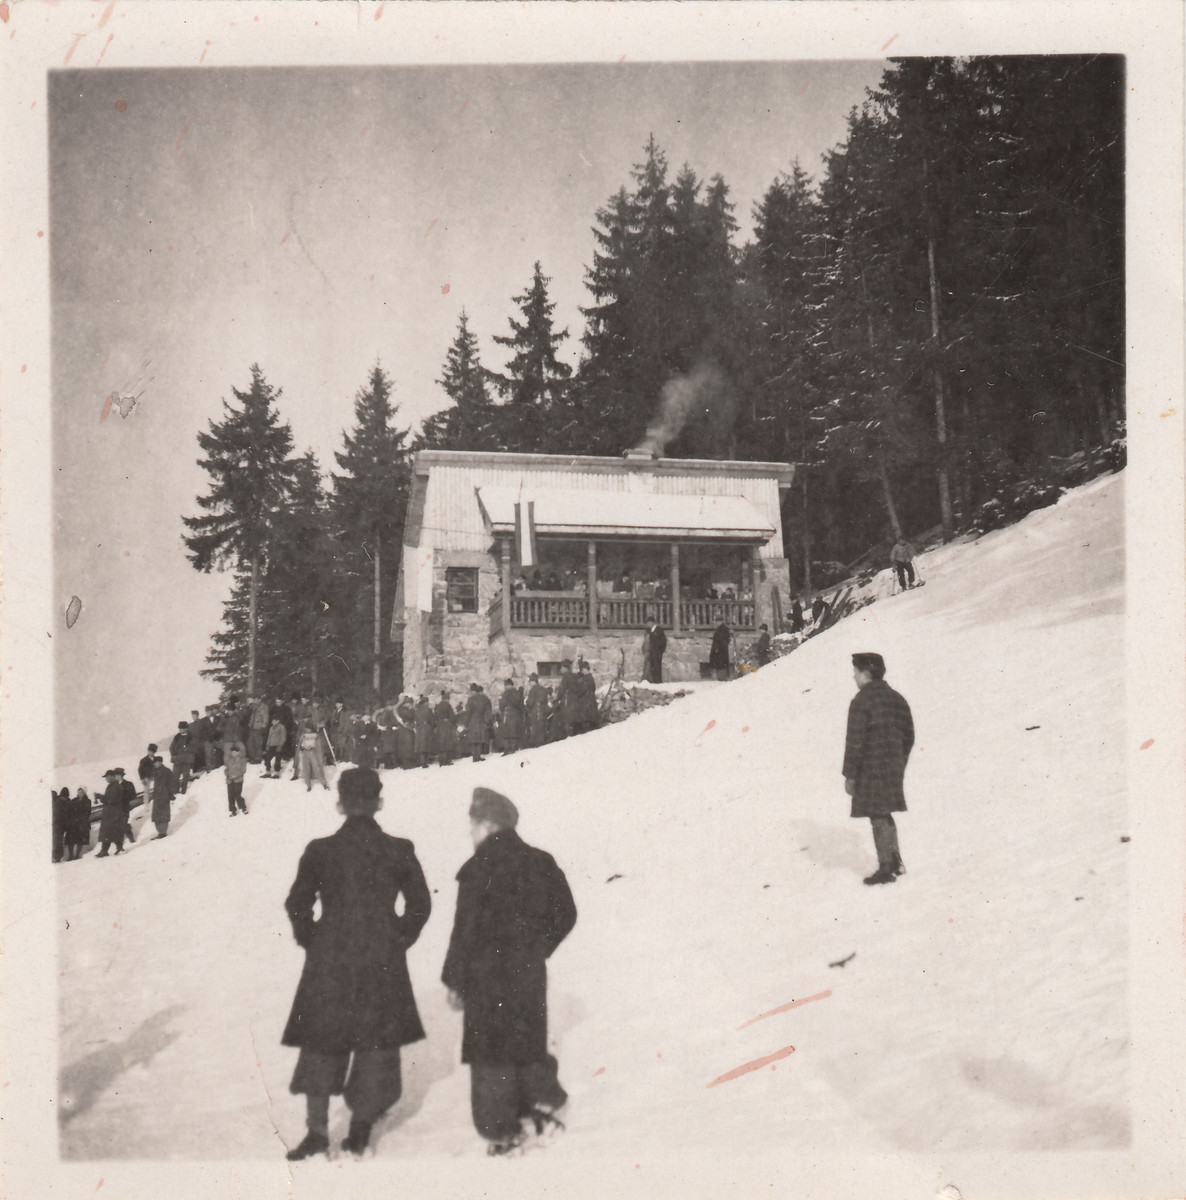 Members of a Jewish forced labor battalion gather on a snowy hill outside of Hajduhadhaz.